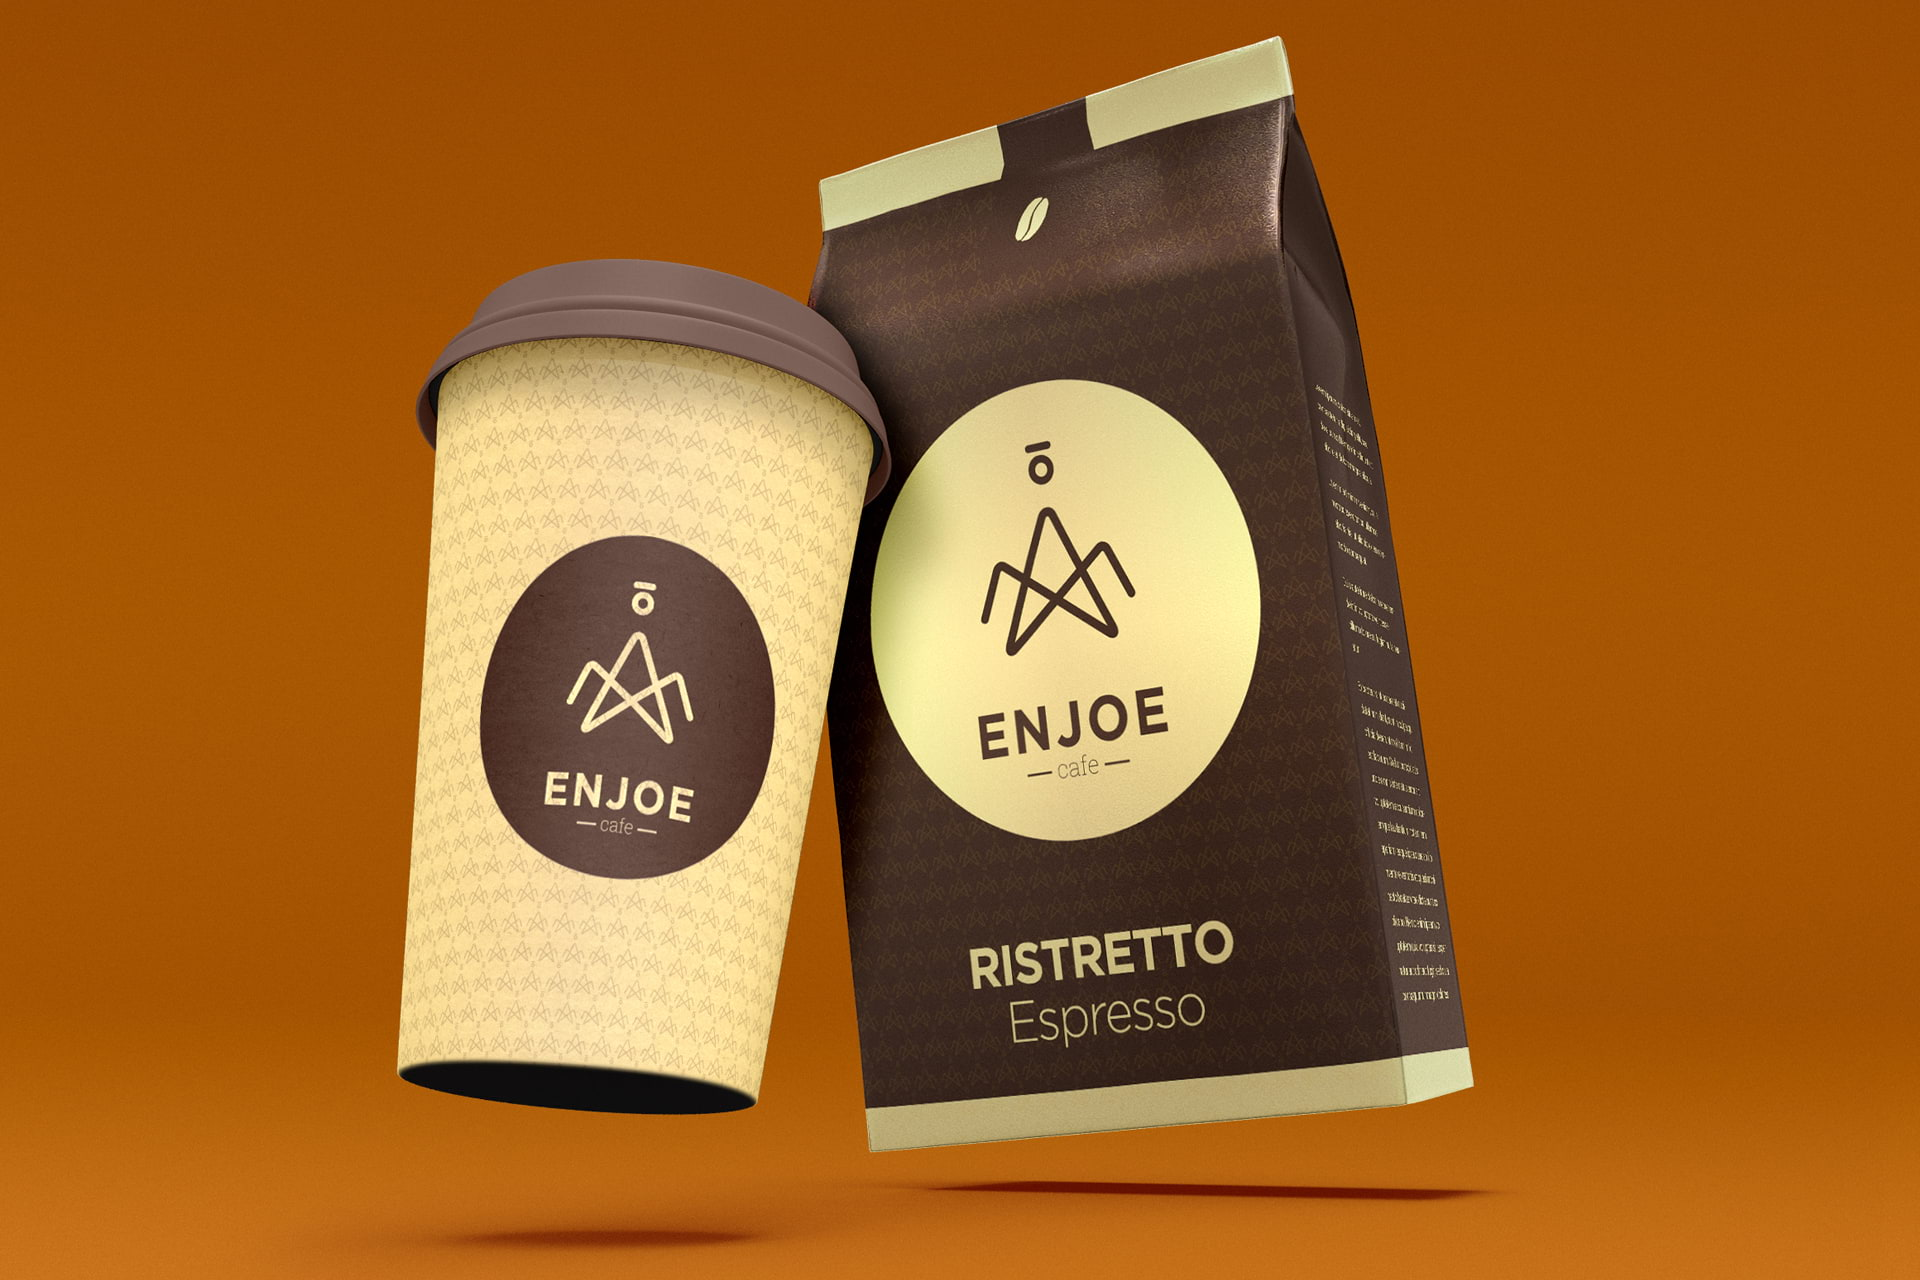 enjoe cafe ideolab